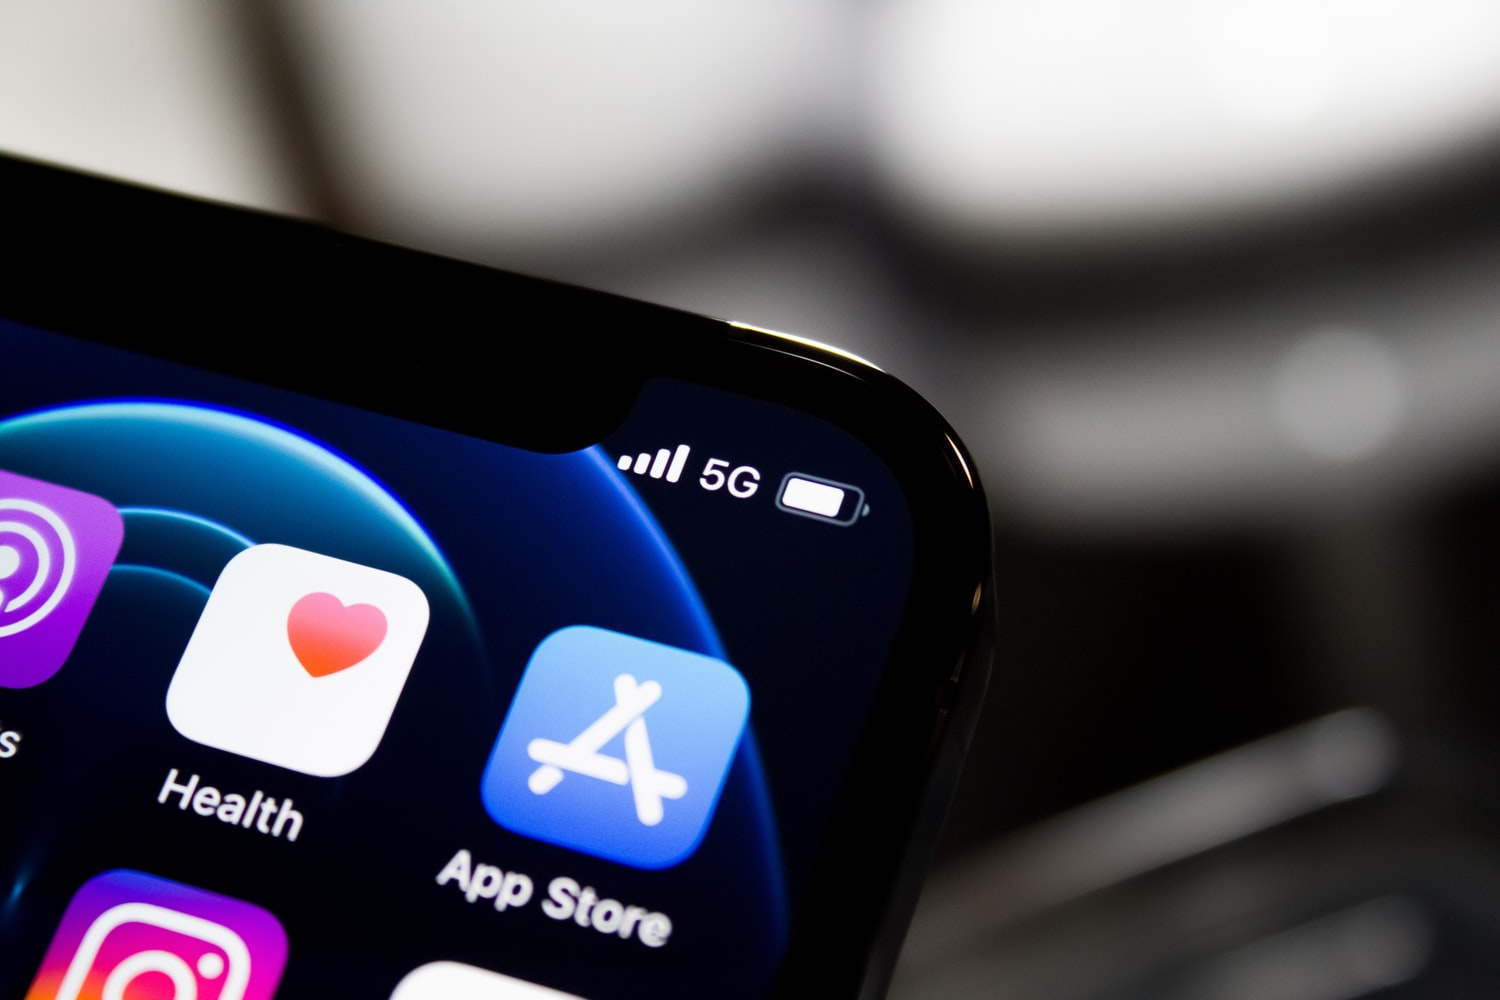 Recent Legislation Might Force Apple to Accept Alternative App Stores and Platforms